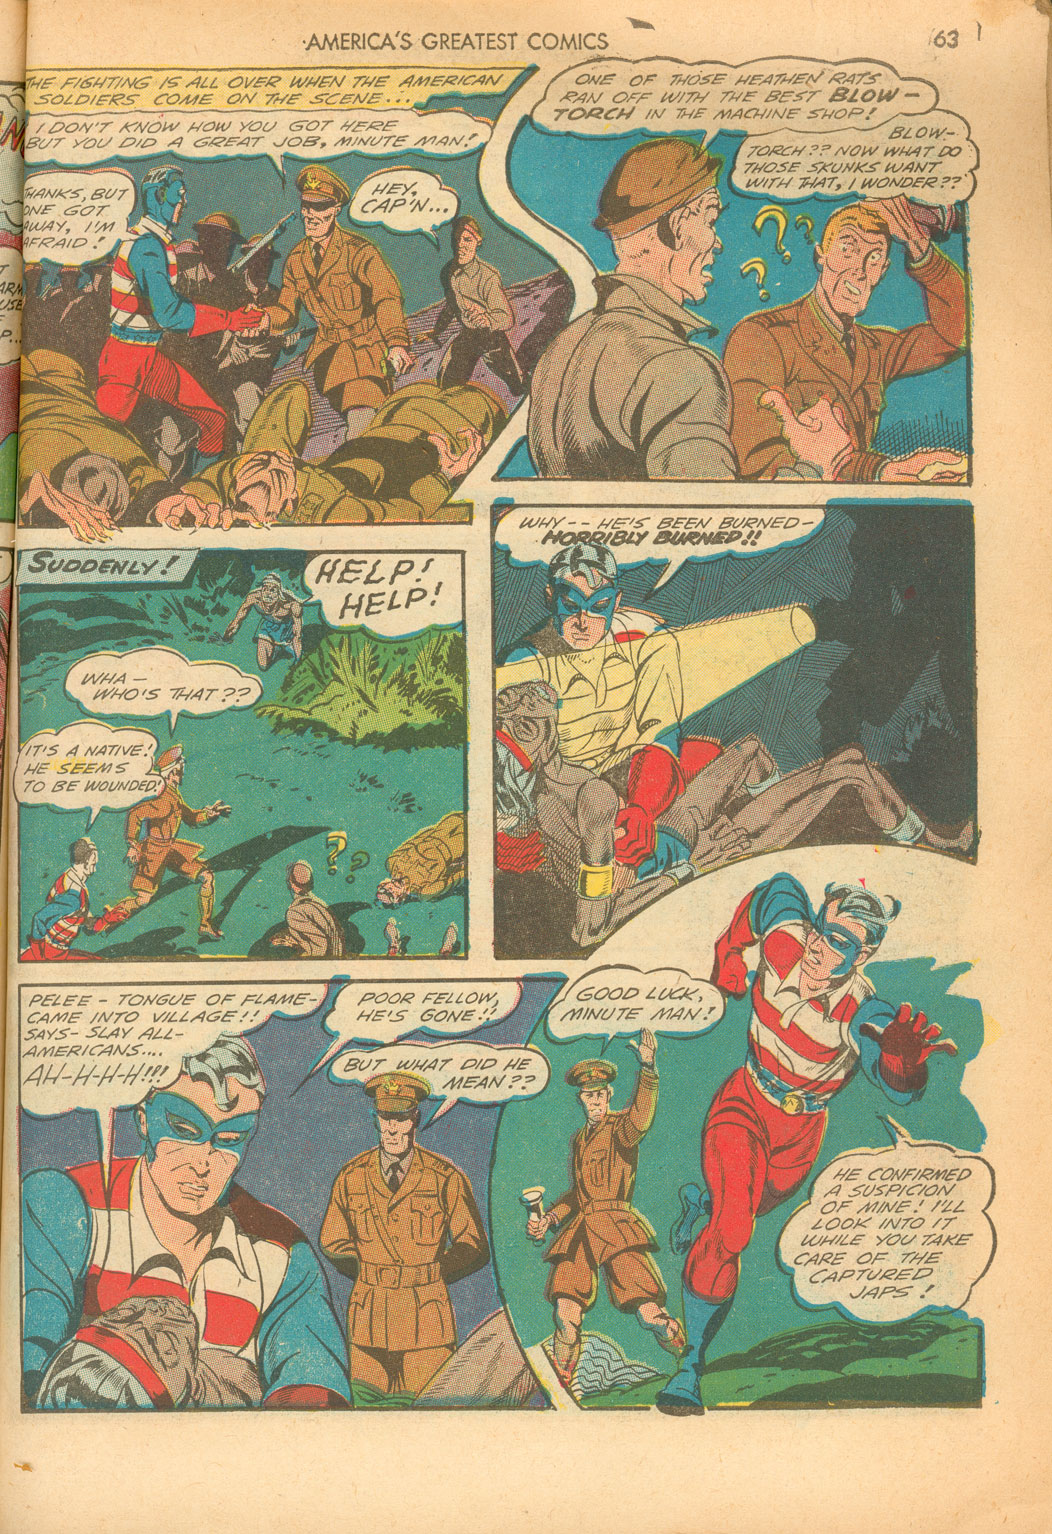 Read online America's Greatest Comics comic -  Issue #5 - 63